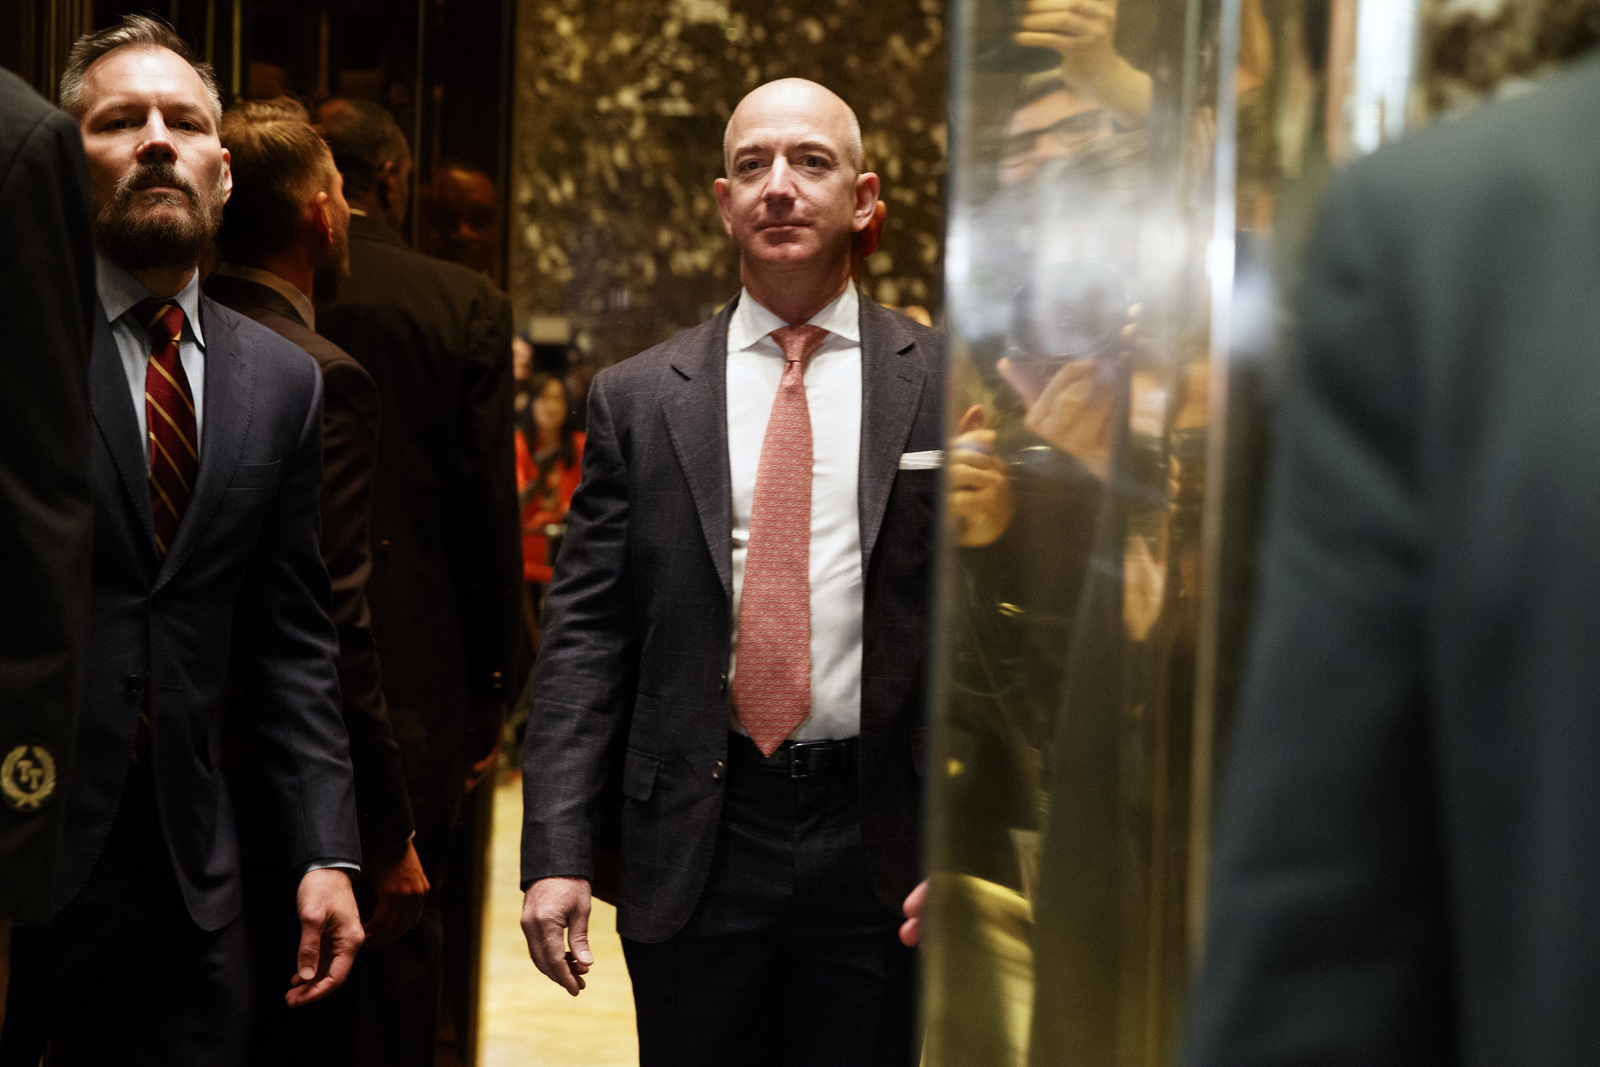 Amazon CEO and Wahsington Post owner, Jeff Bezos on an elevator for a meeting with then President-elect Donald Trump at Trump Tower in New York, Dec. 14, 2016. (AP/Evan Vucci)